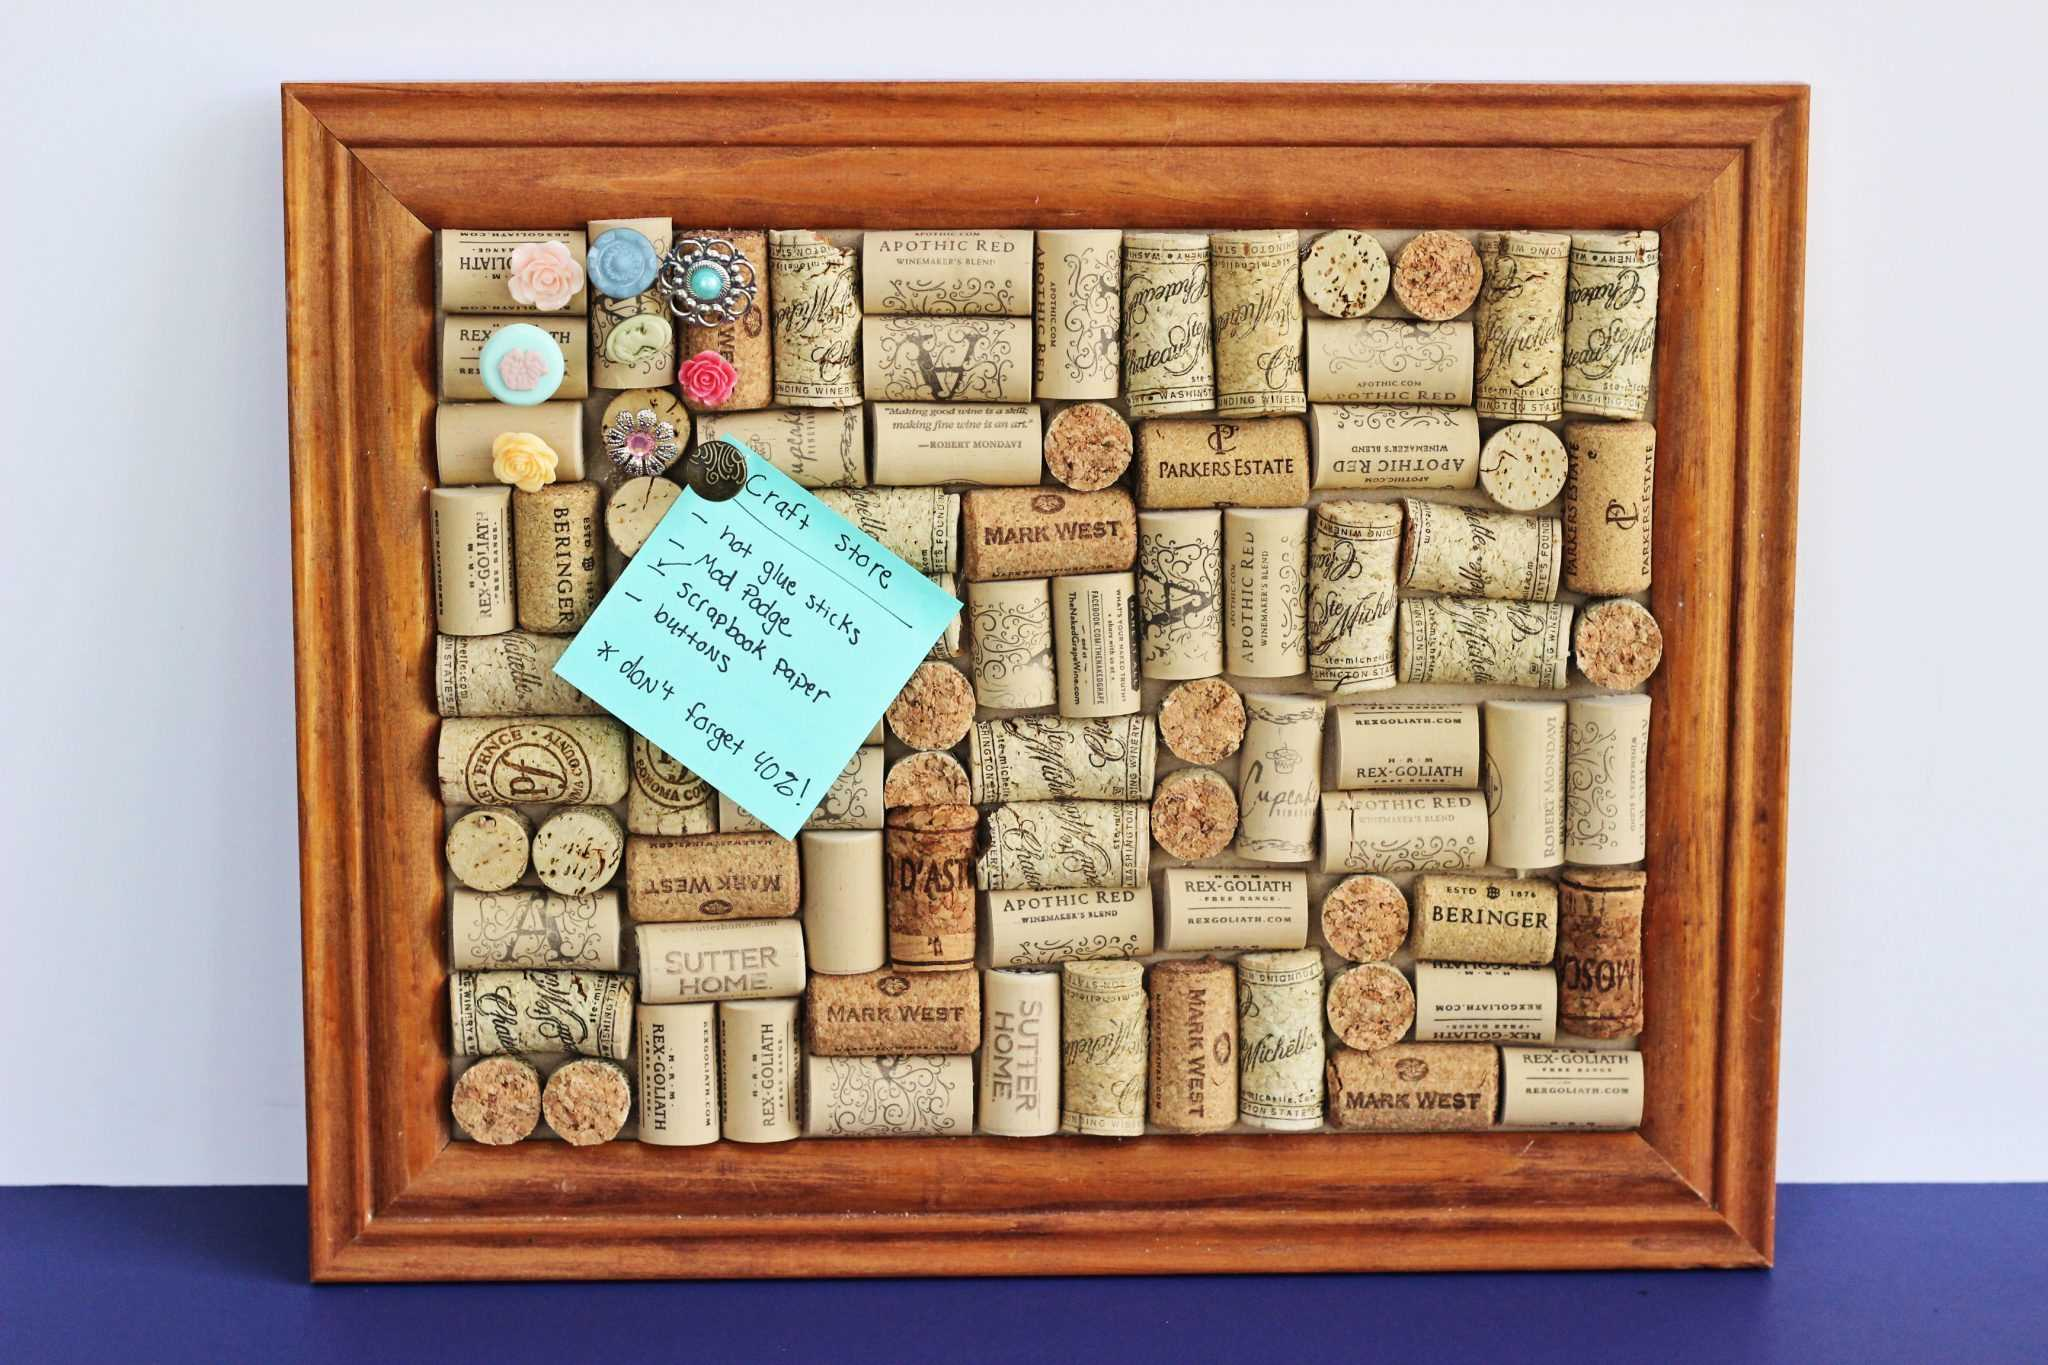 Cork crafts are a great way to upcycle used wine corks. You can make this cork board DIY in about an hour! Don't have an hour? You can make the pushpin DIY in 5 minutes or less.